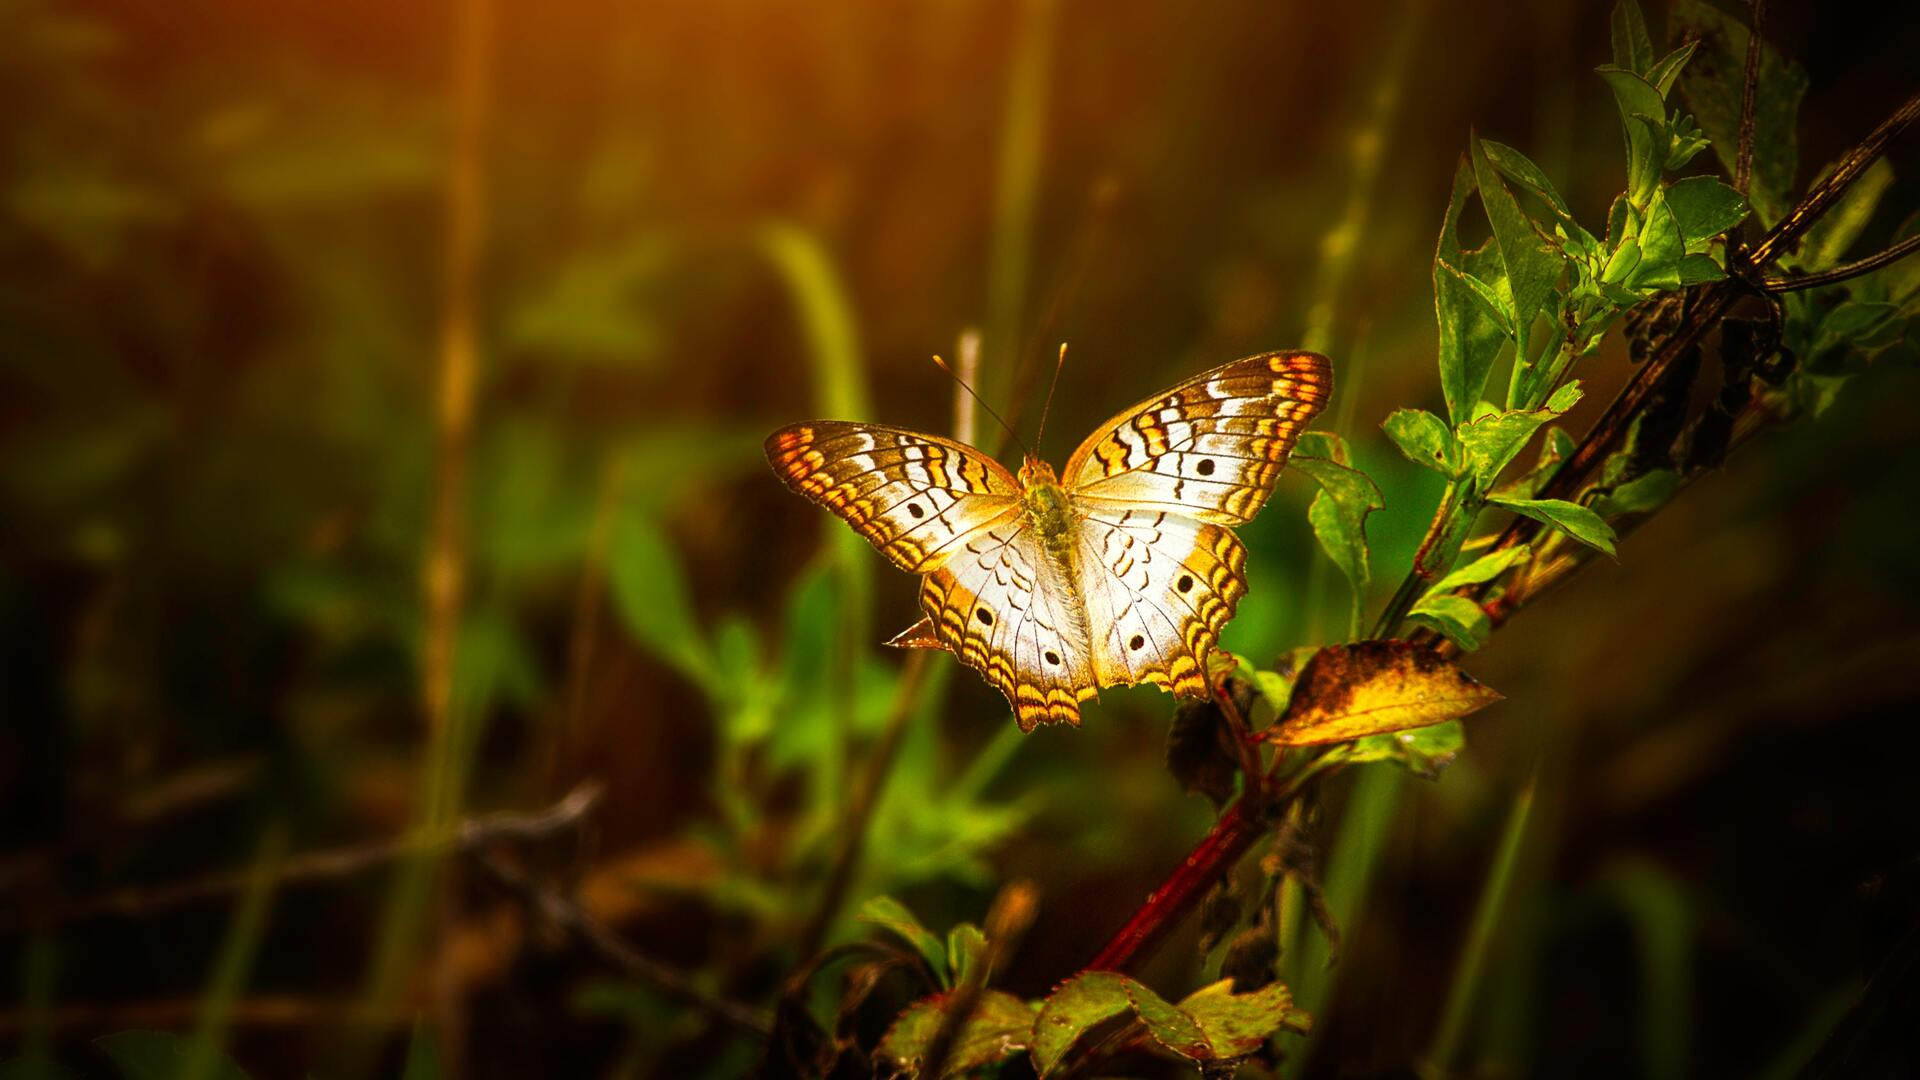 1920x1080 Butterfly On Leaf Laptop Full Hd 1080p Hd 4k Wallpapers Images Backgrounds Photos And Pictures